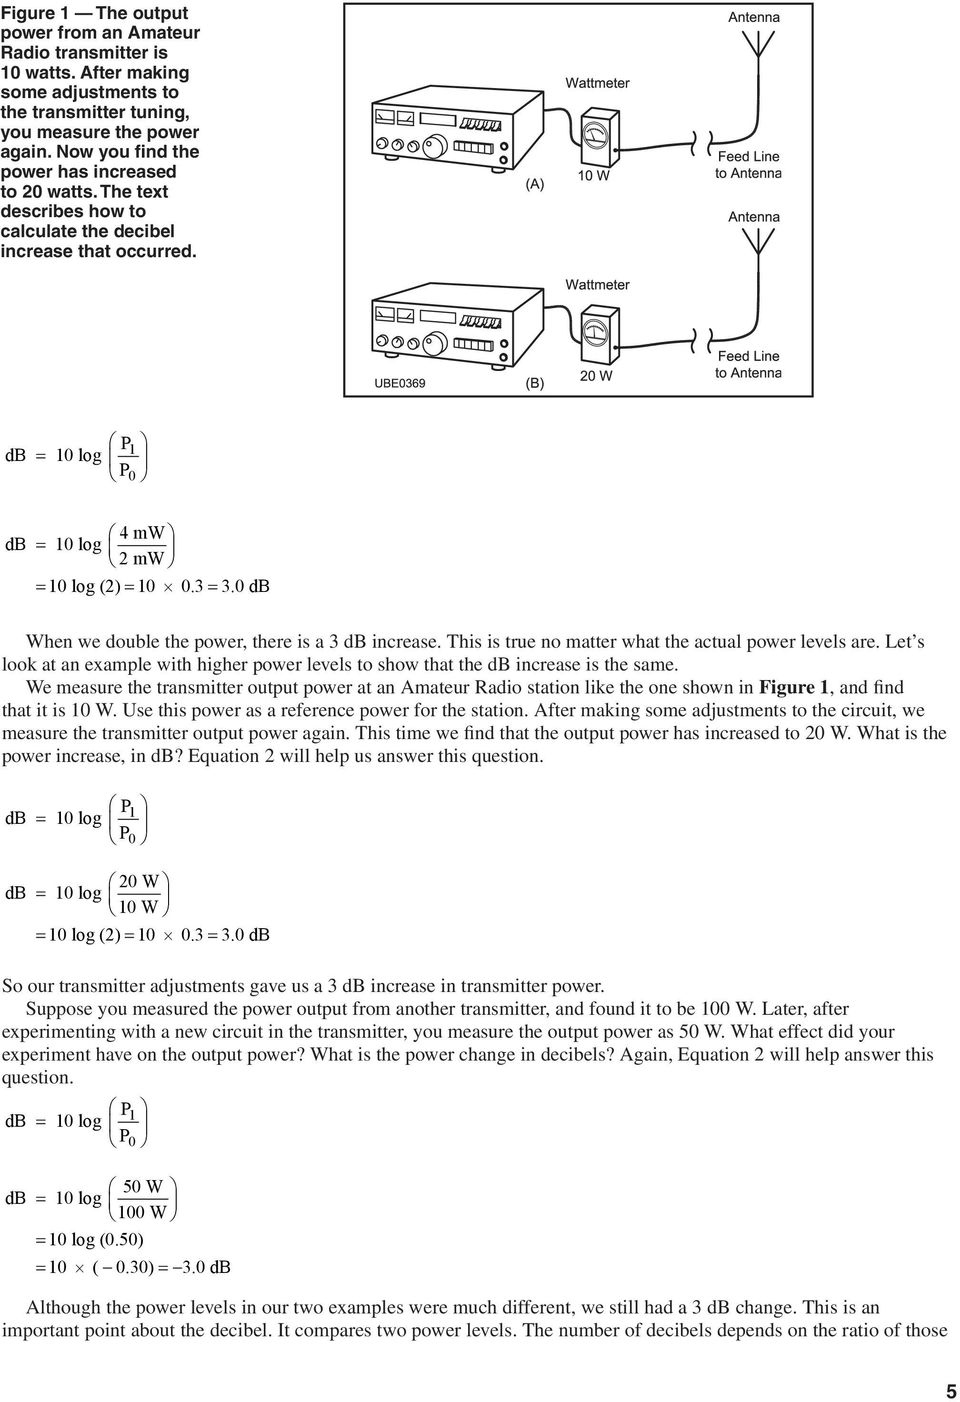 A Tutorial On The Decibel Pdf And Antenna Transmitter Two Points Are In One Line 0 When We Double Power There Is 3 Increase This True